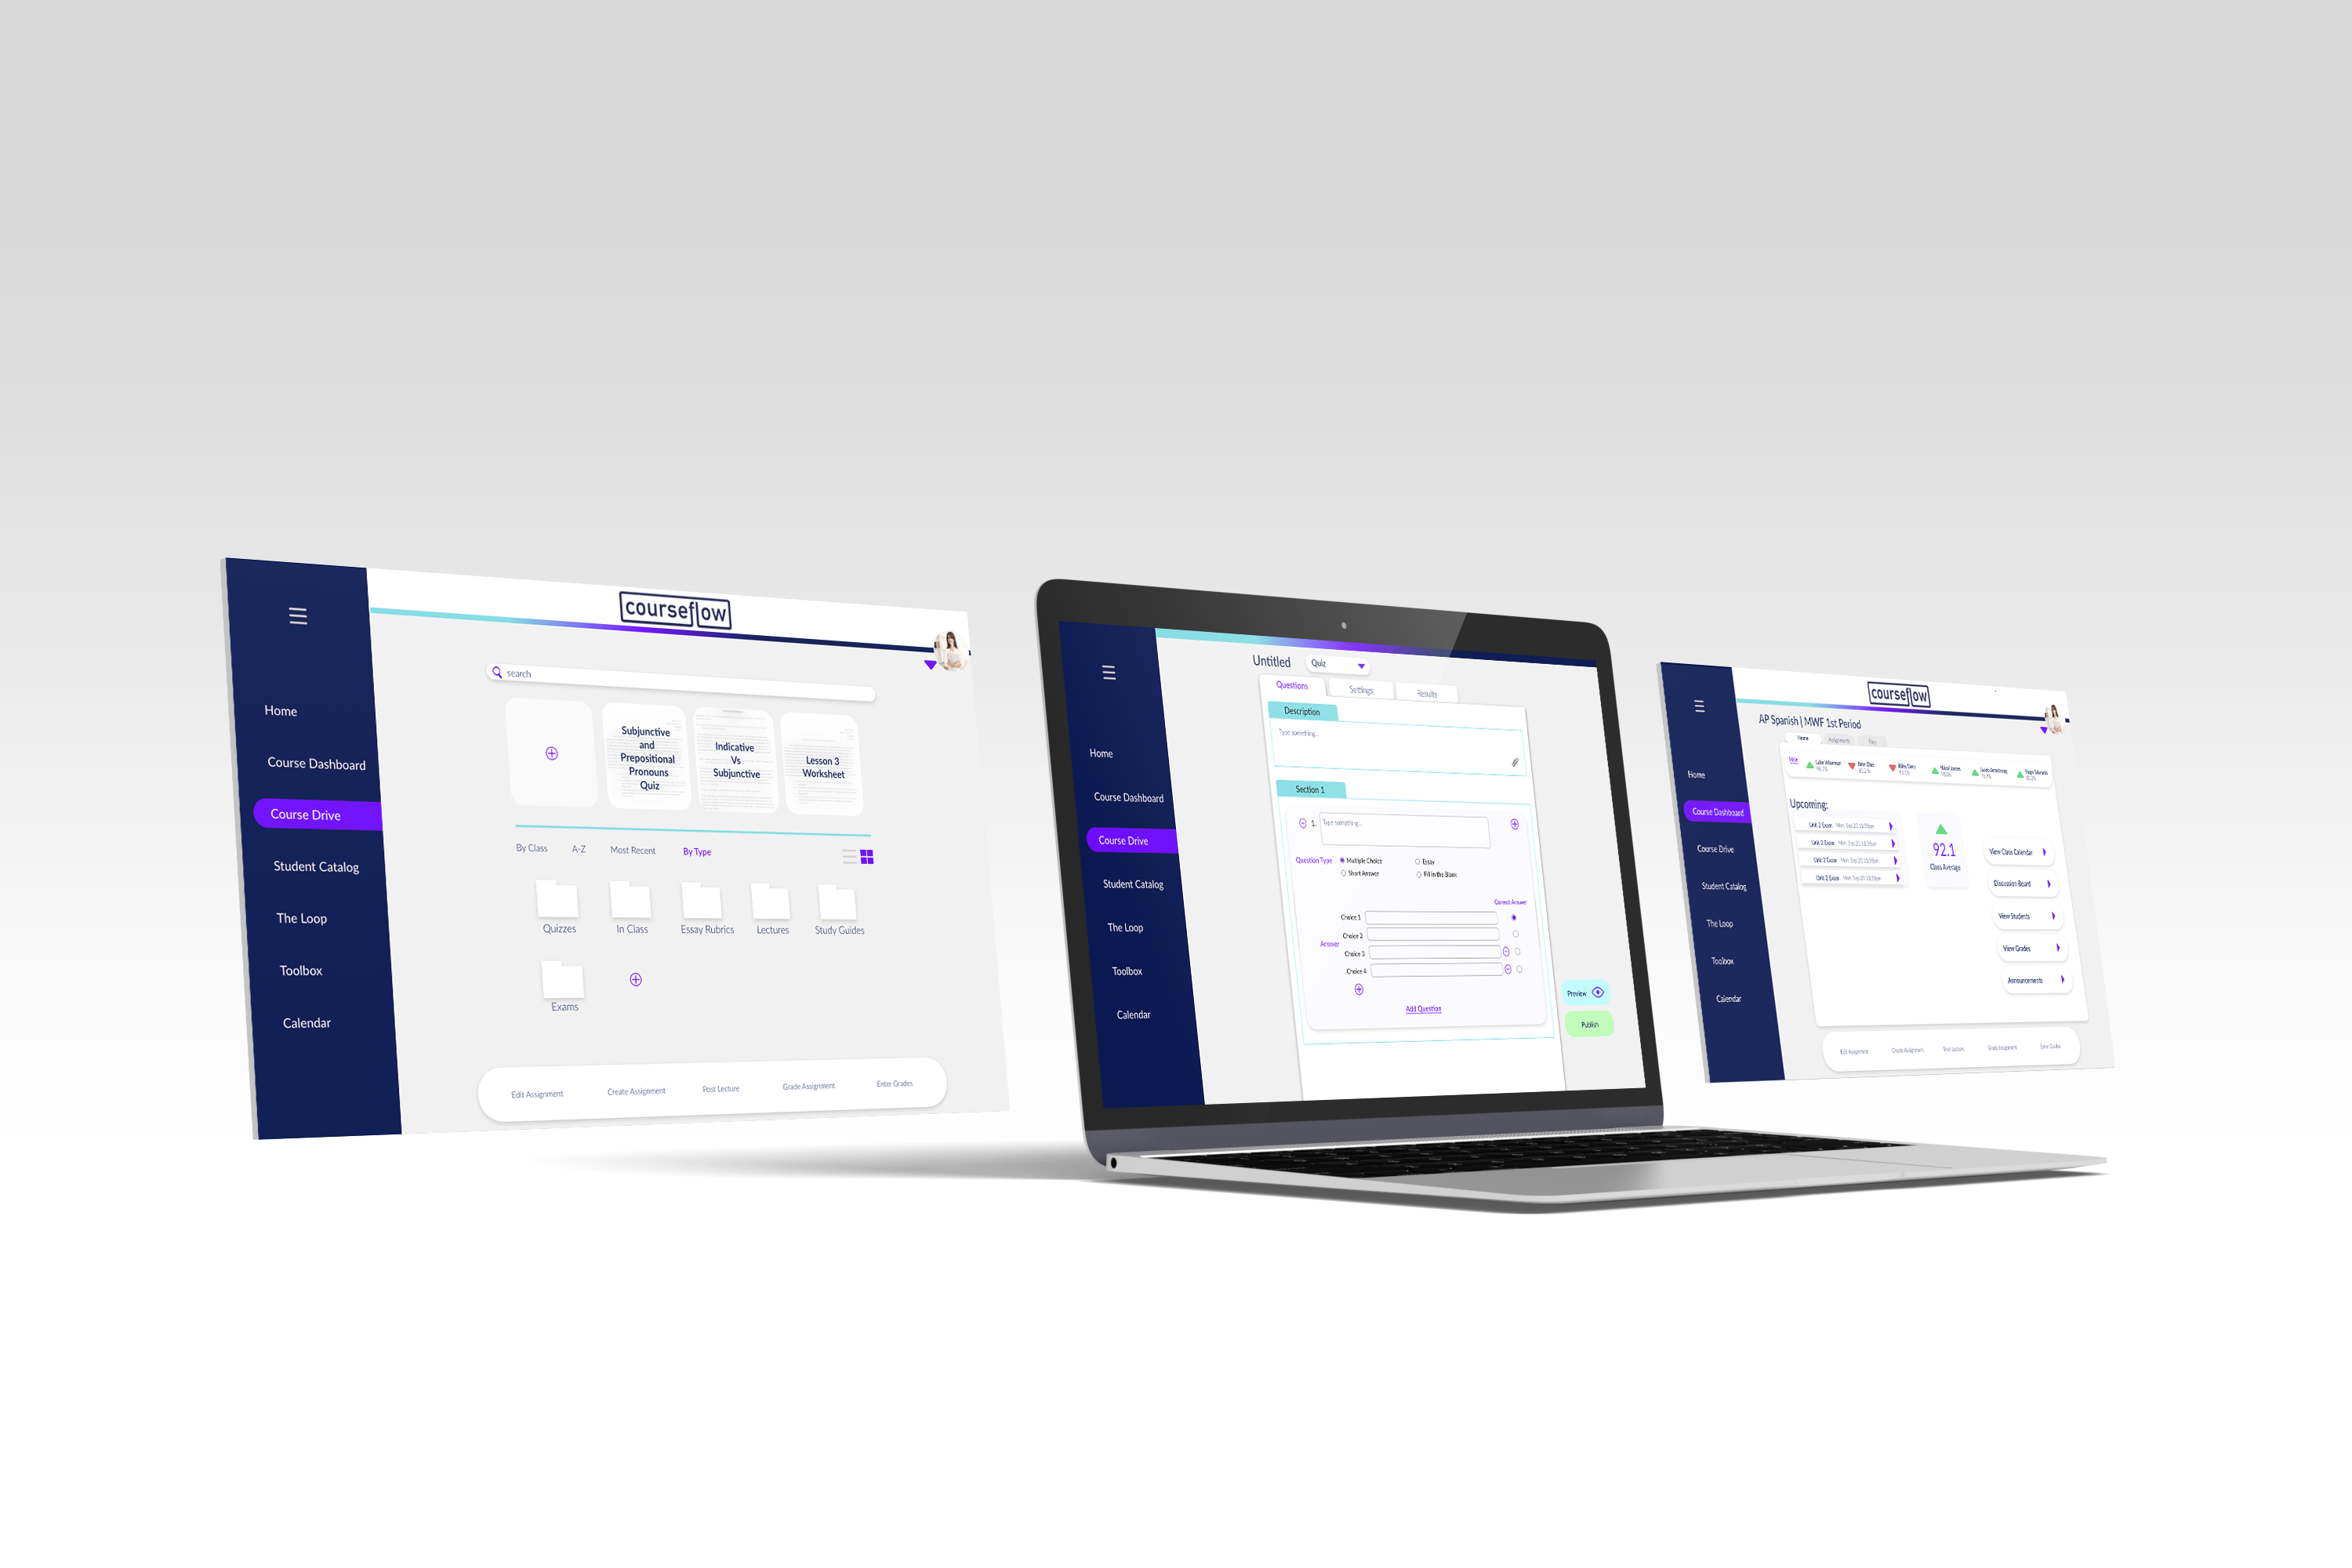 Graphic of a few screens from Courseflow